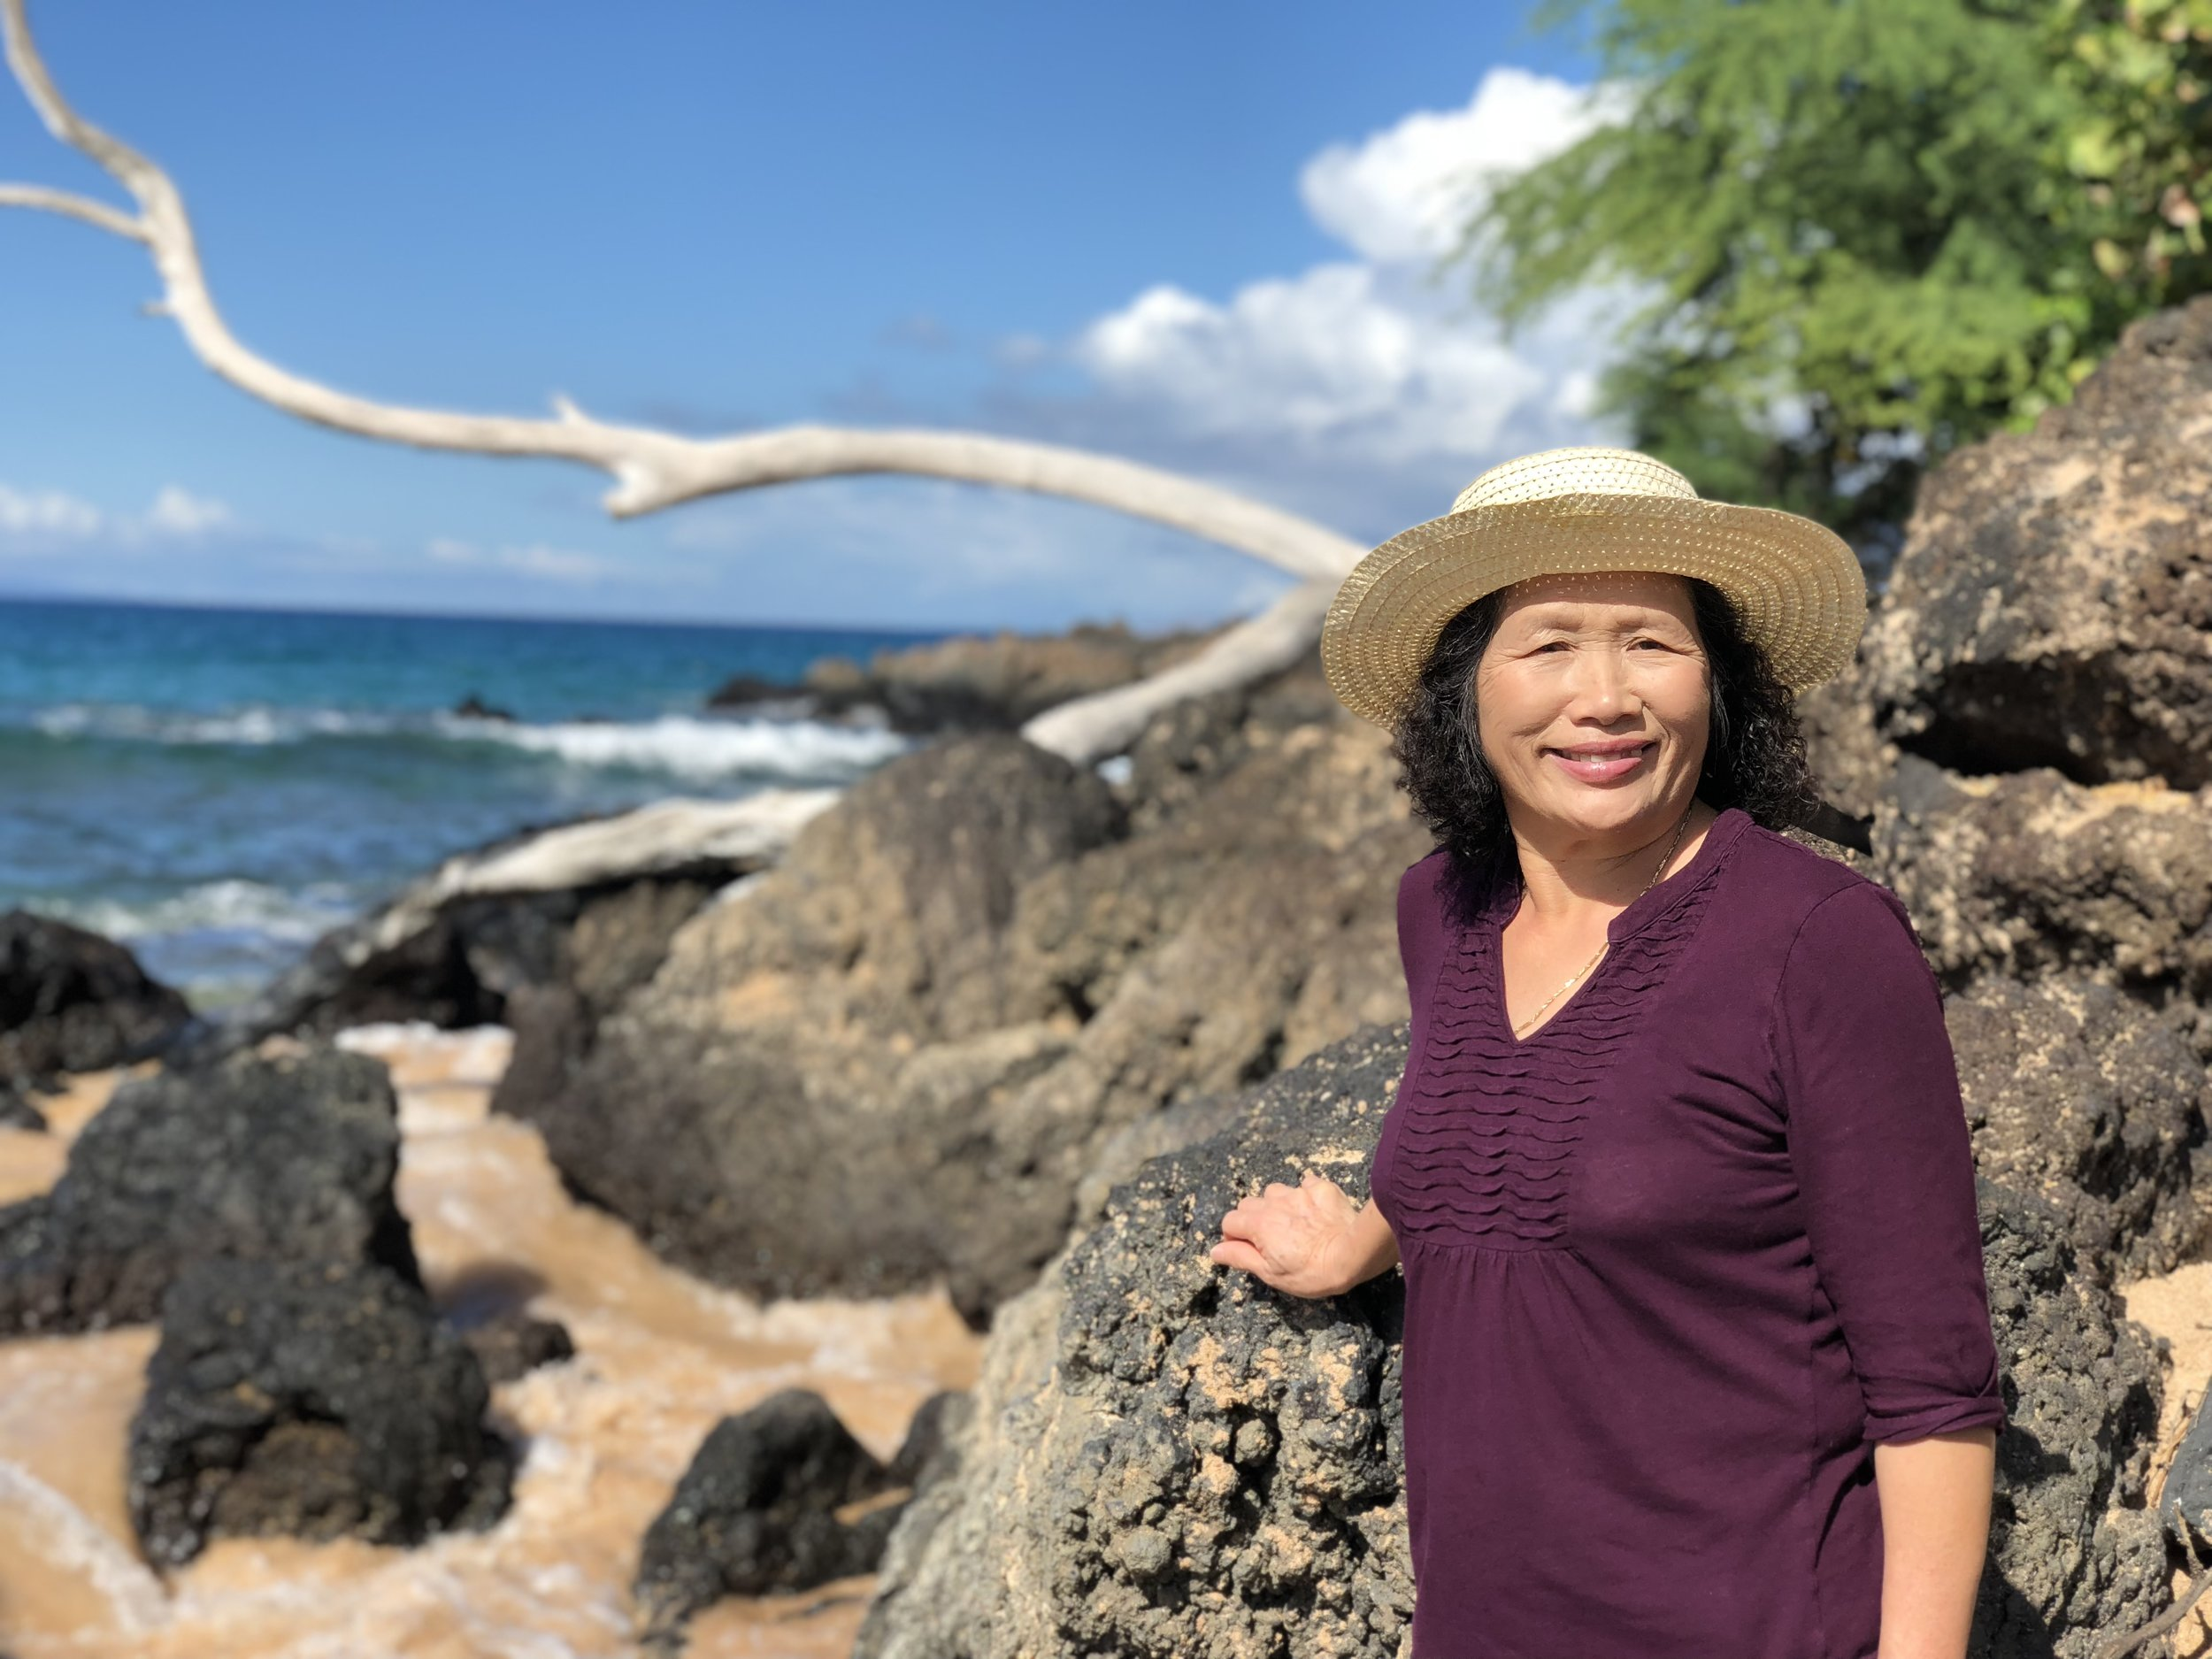 Mom's first trip to Hawaii.